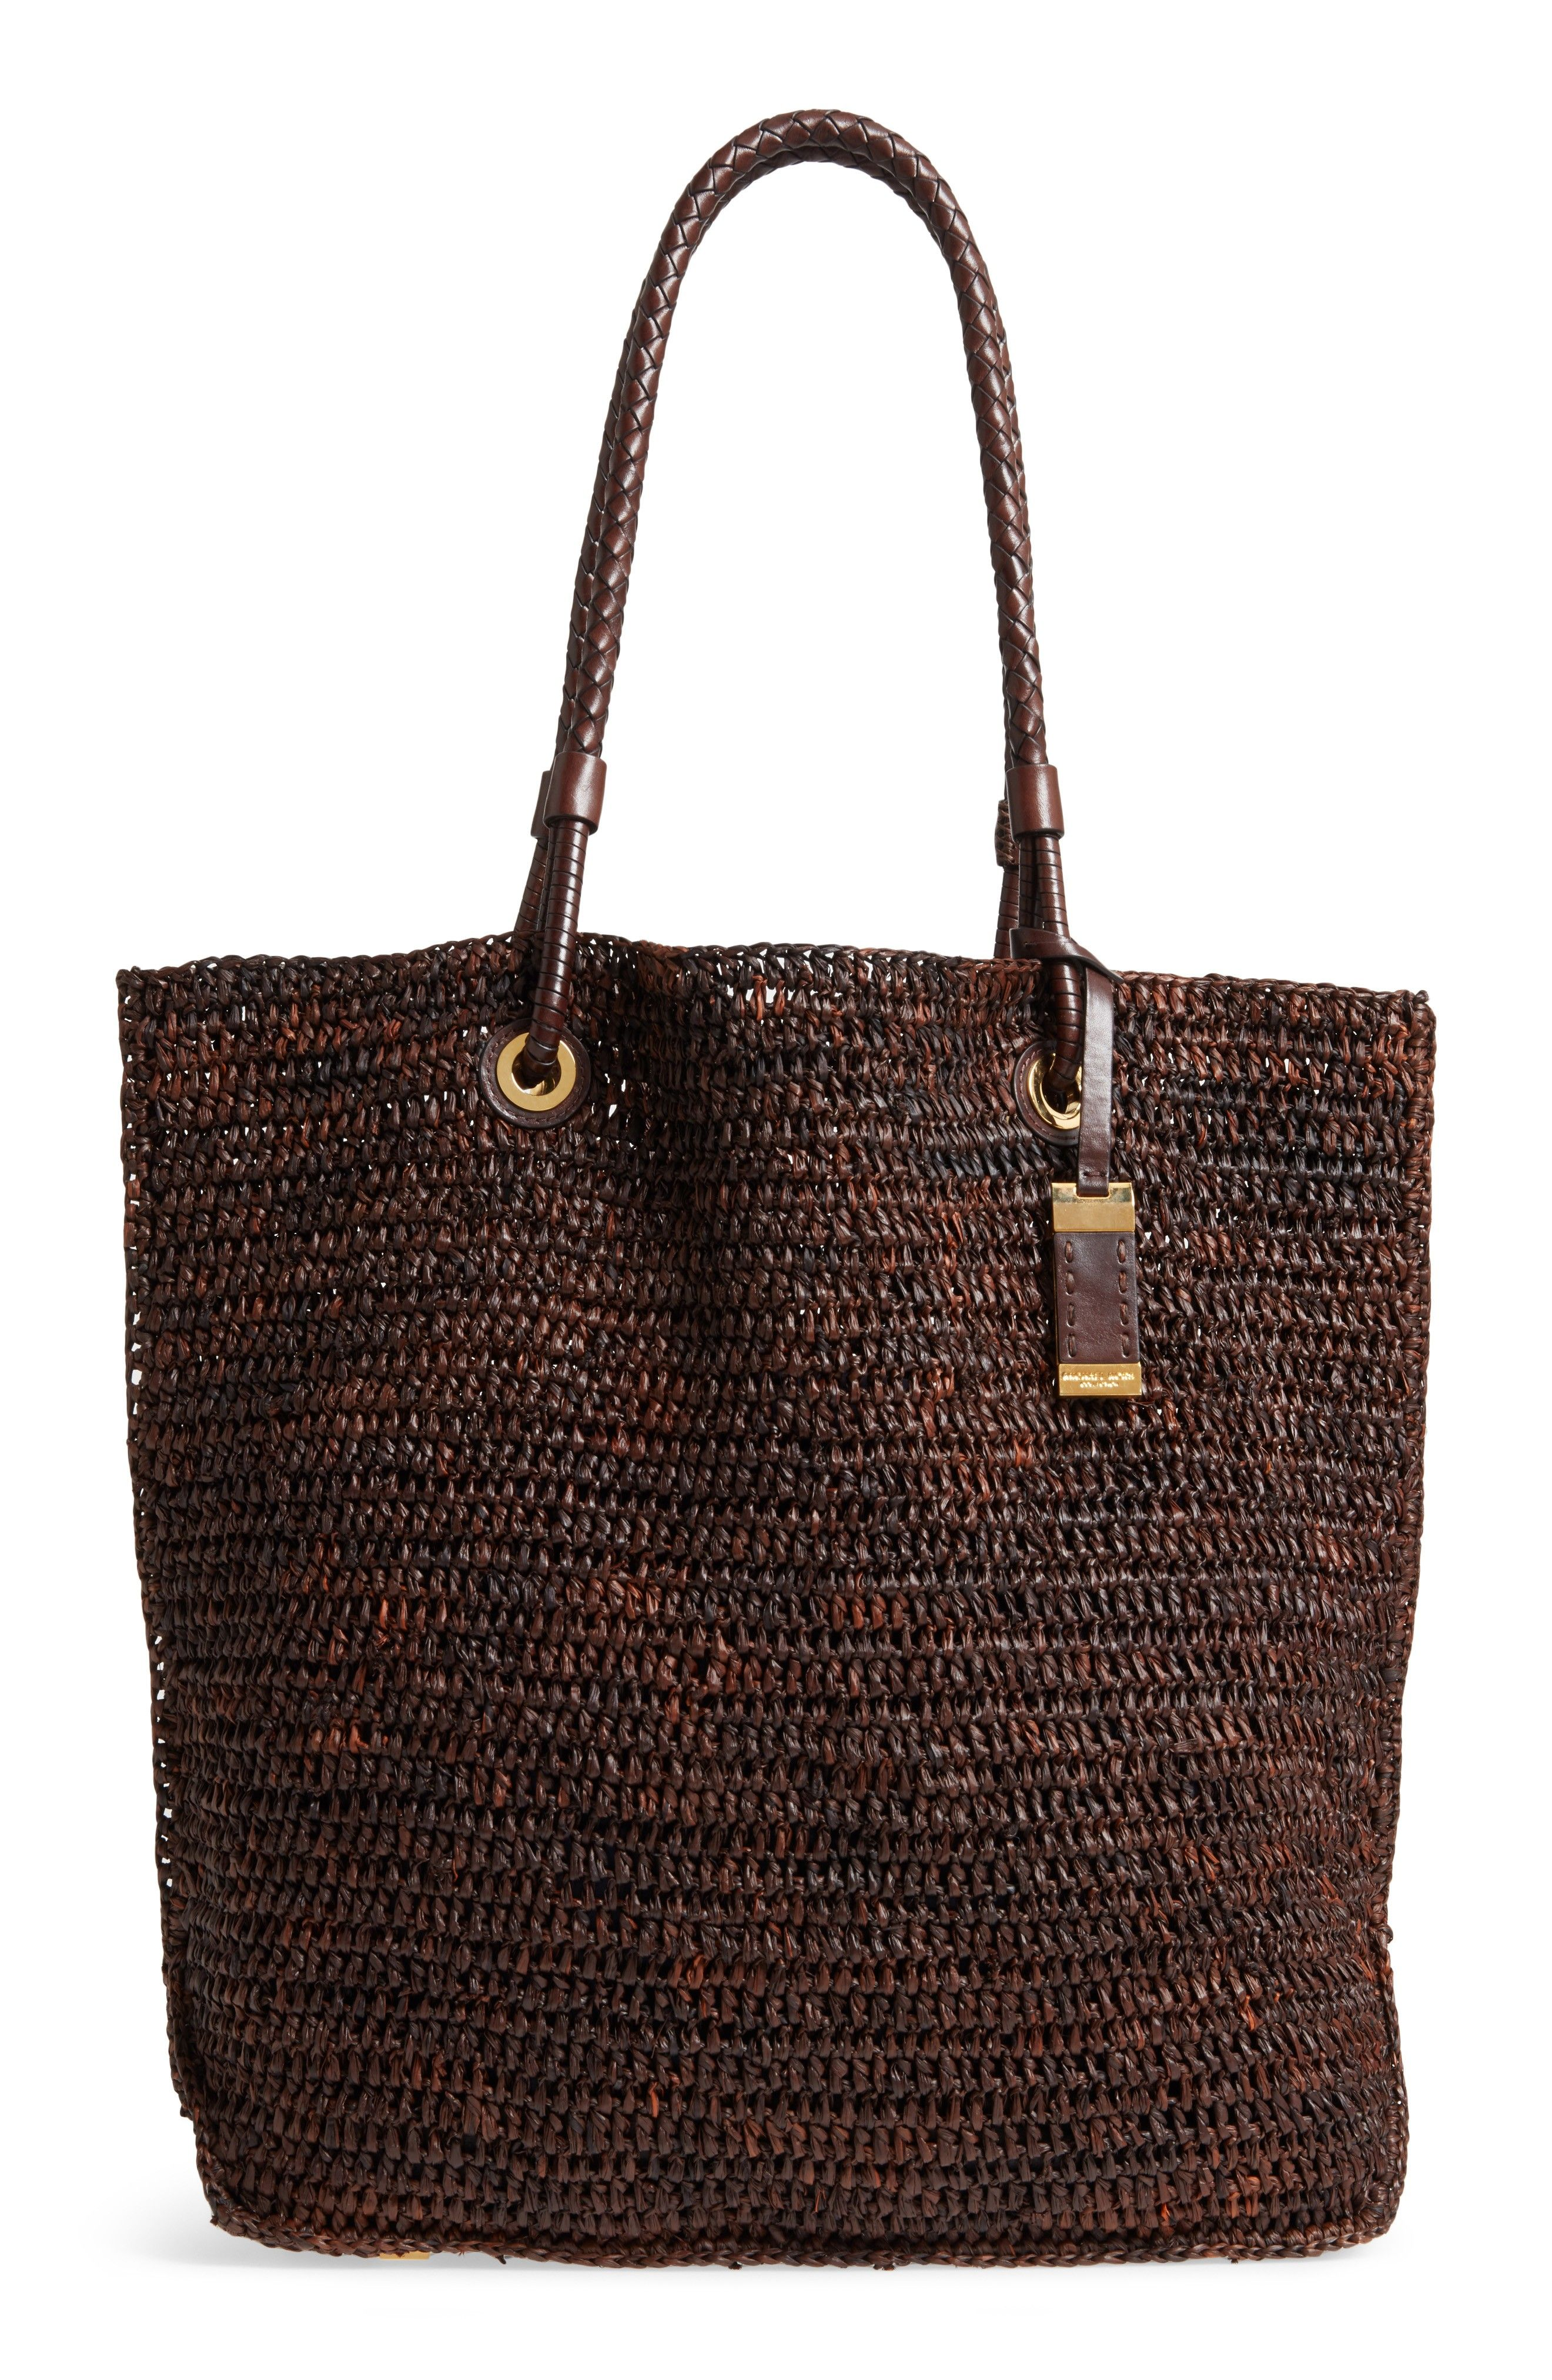 2aed6b17a4 New MICHAEL KORS Skorpios Woven Raffia Tote online. Enjoy the absolute best  in Furla Bags from top store. Sku hevo80807ftpd77886